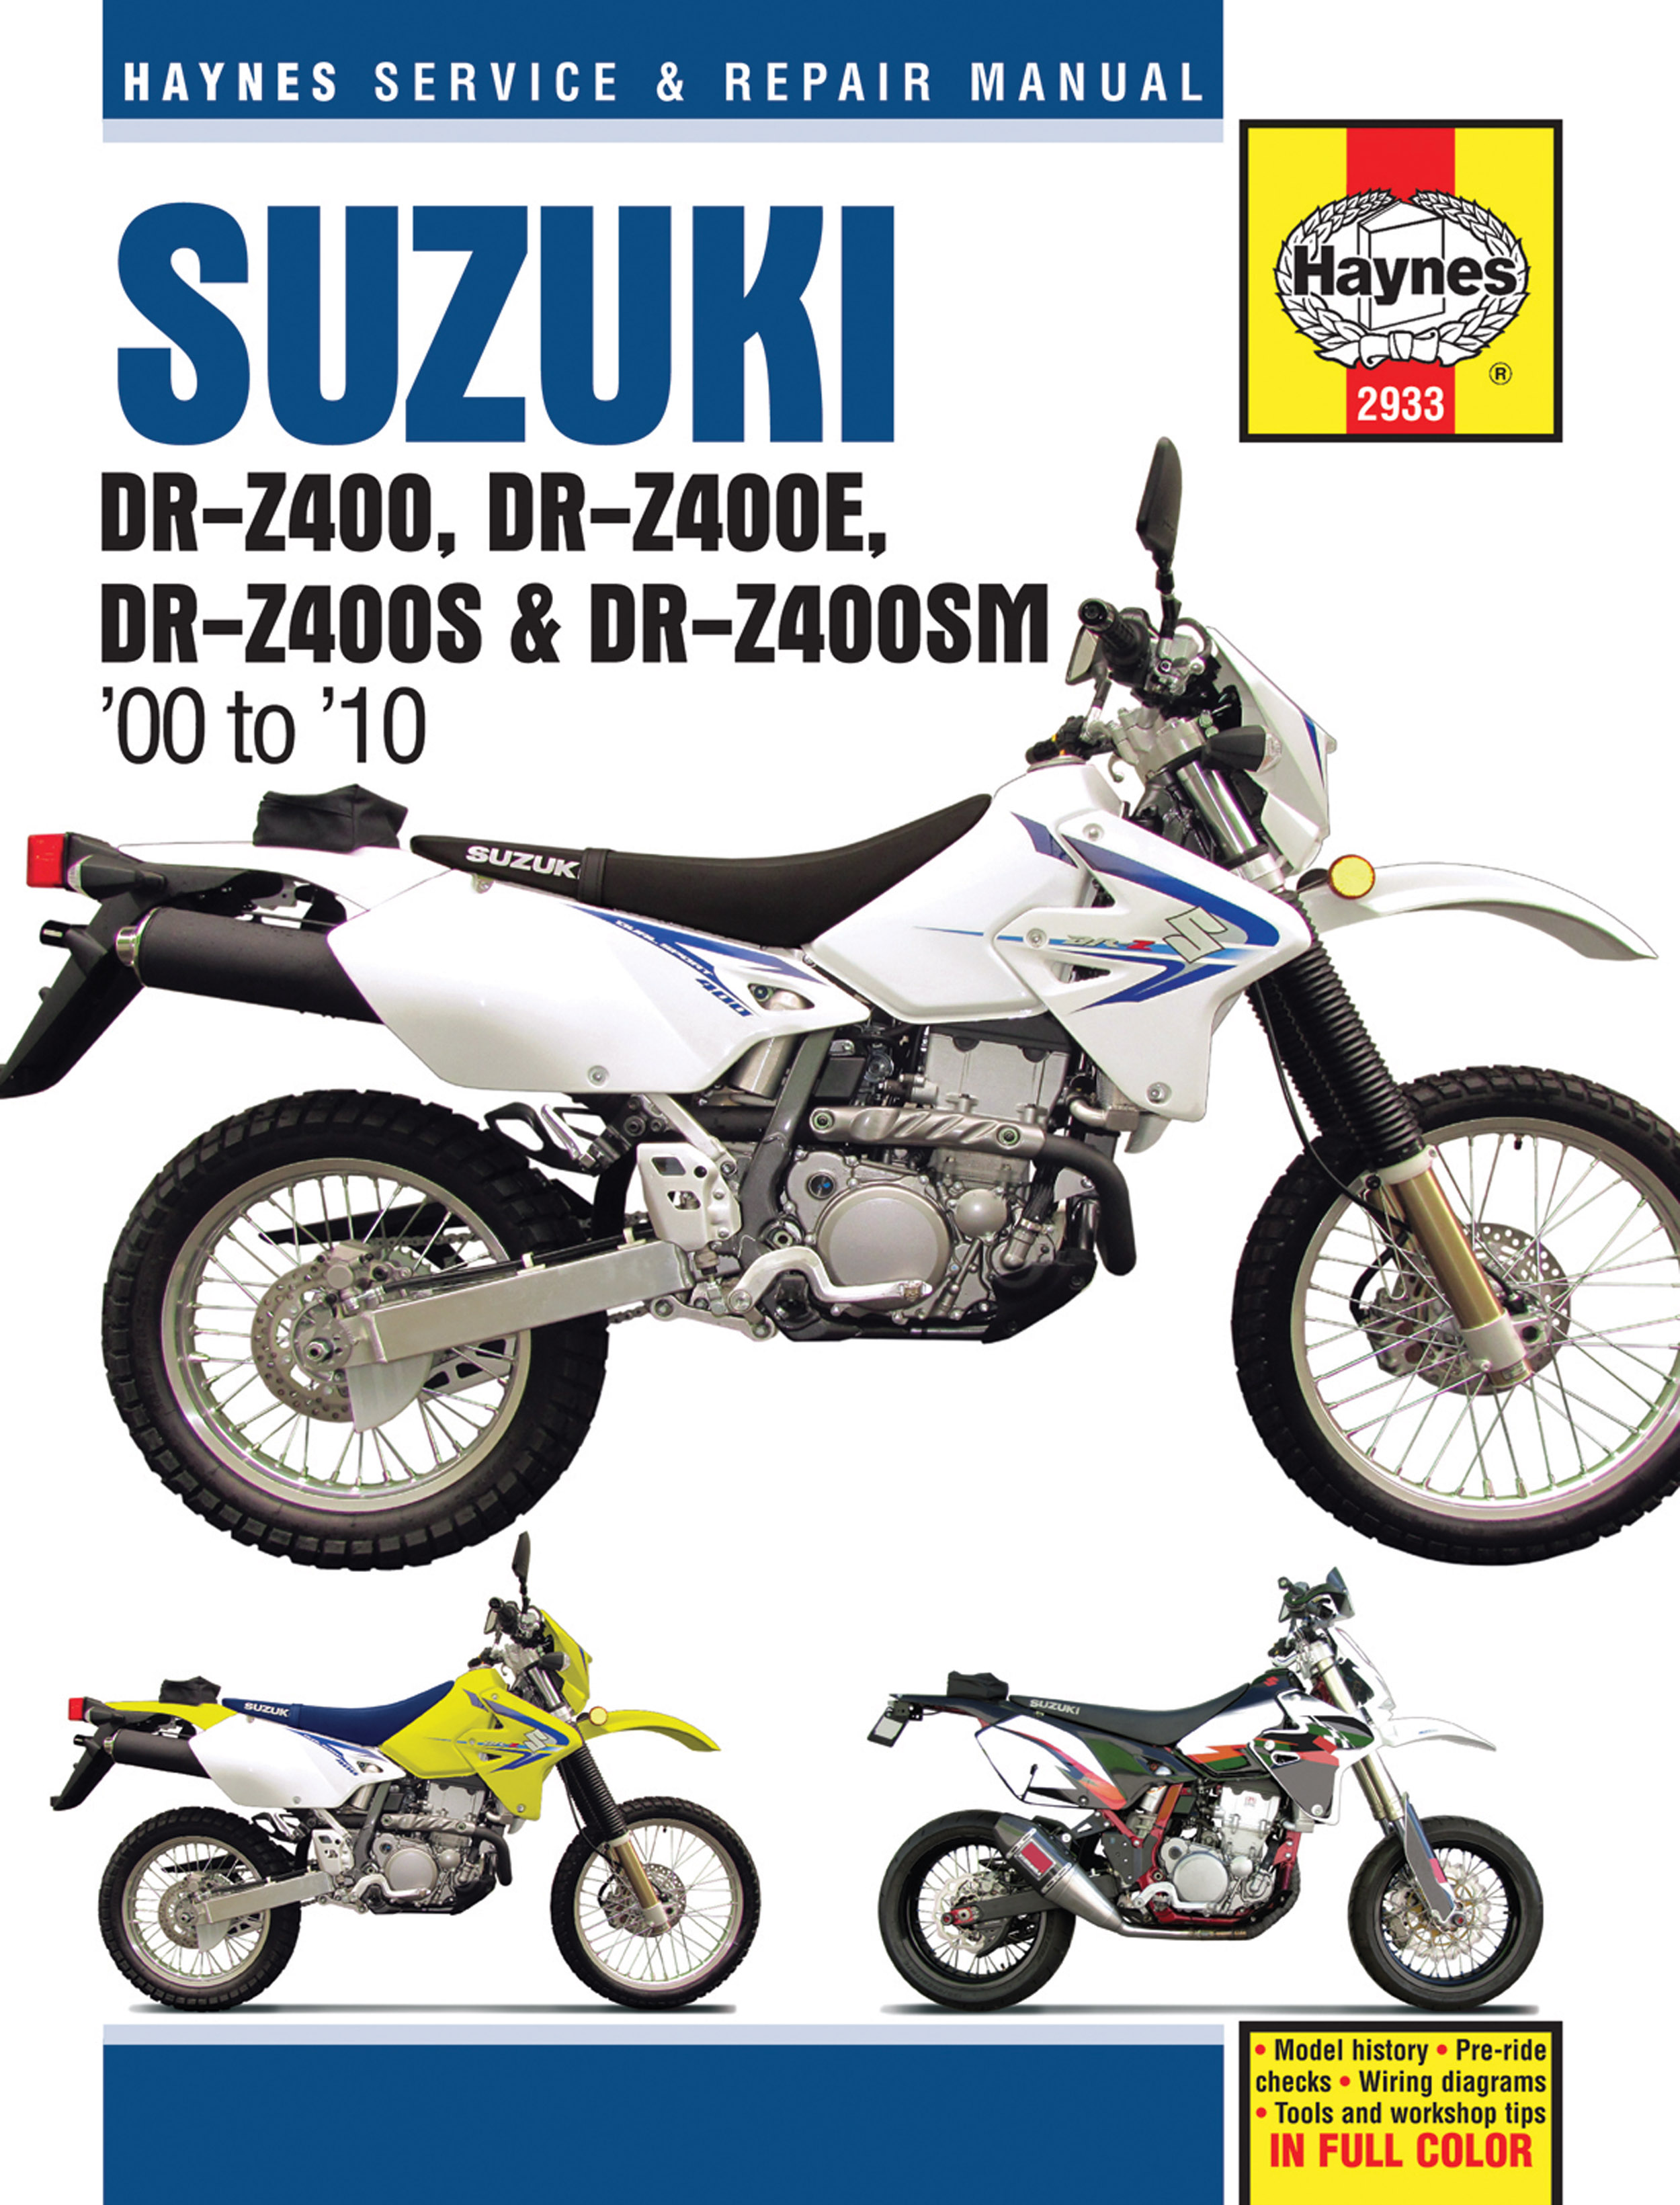 drz400 headlight wiring diagram stereo guide 2016 suzuki great installation of images gallery